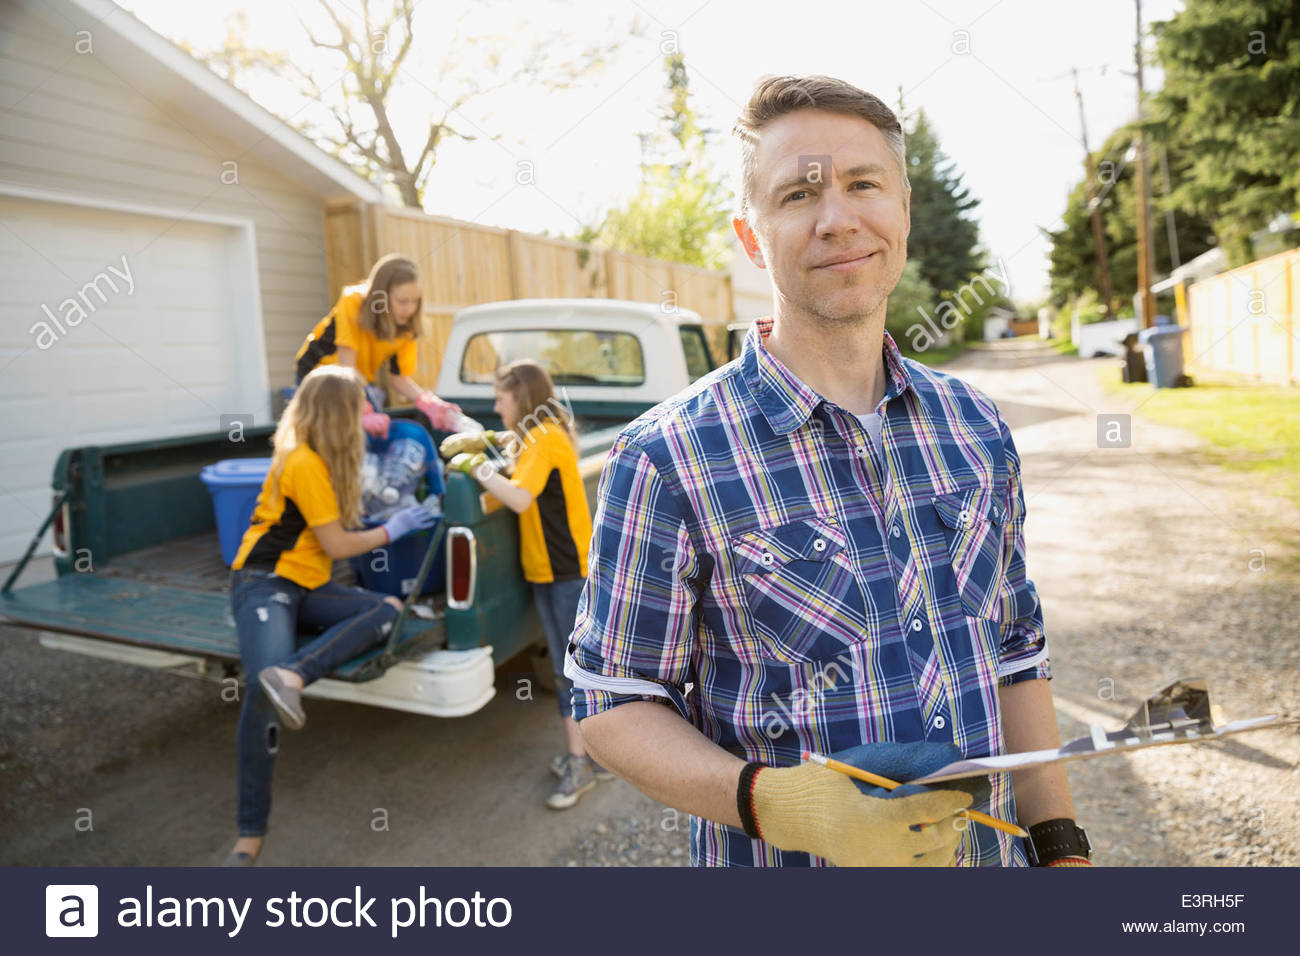 Father and daughters recycling - Stock Image